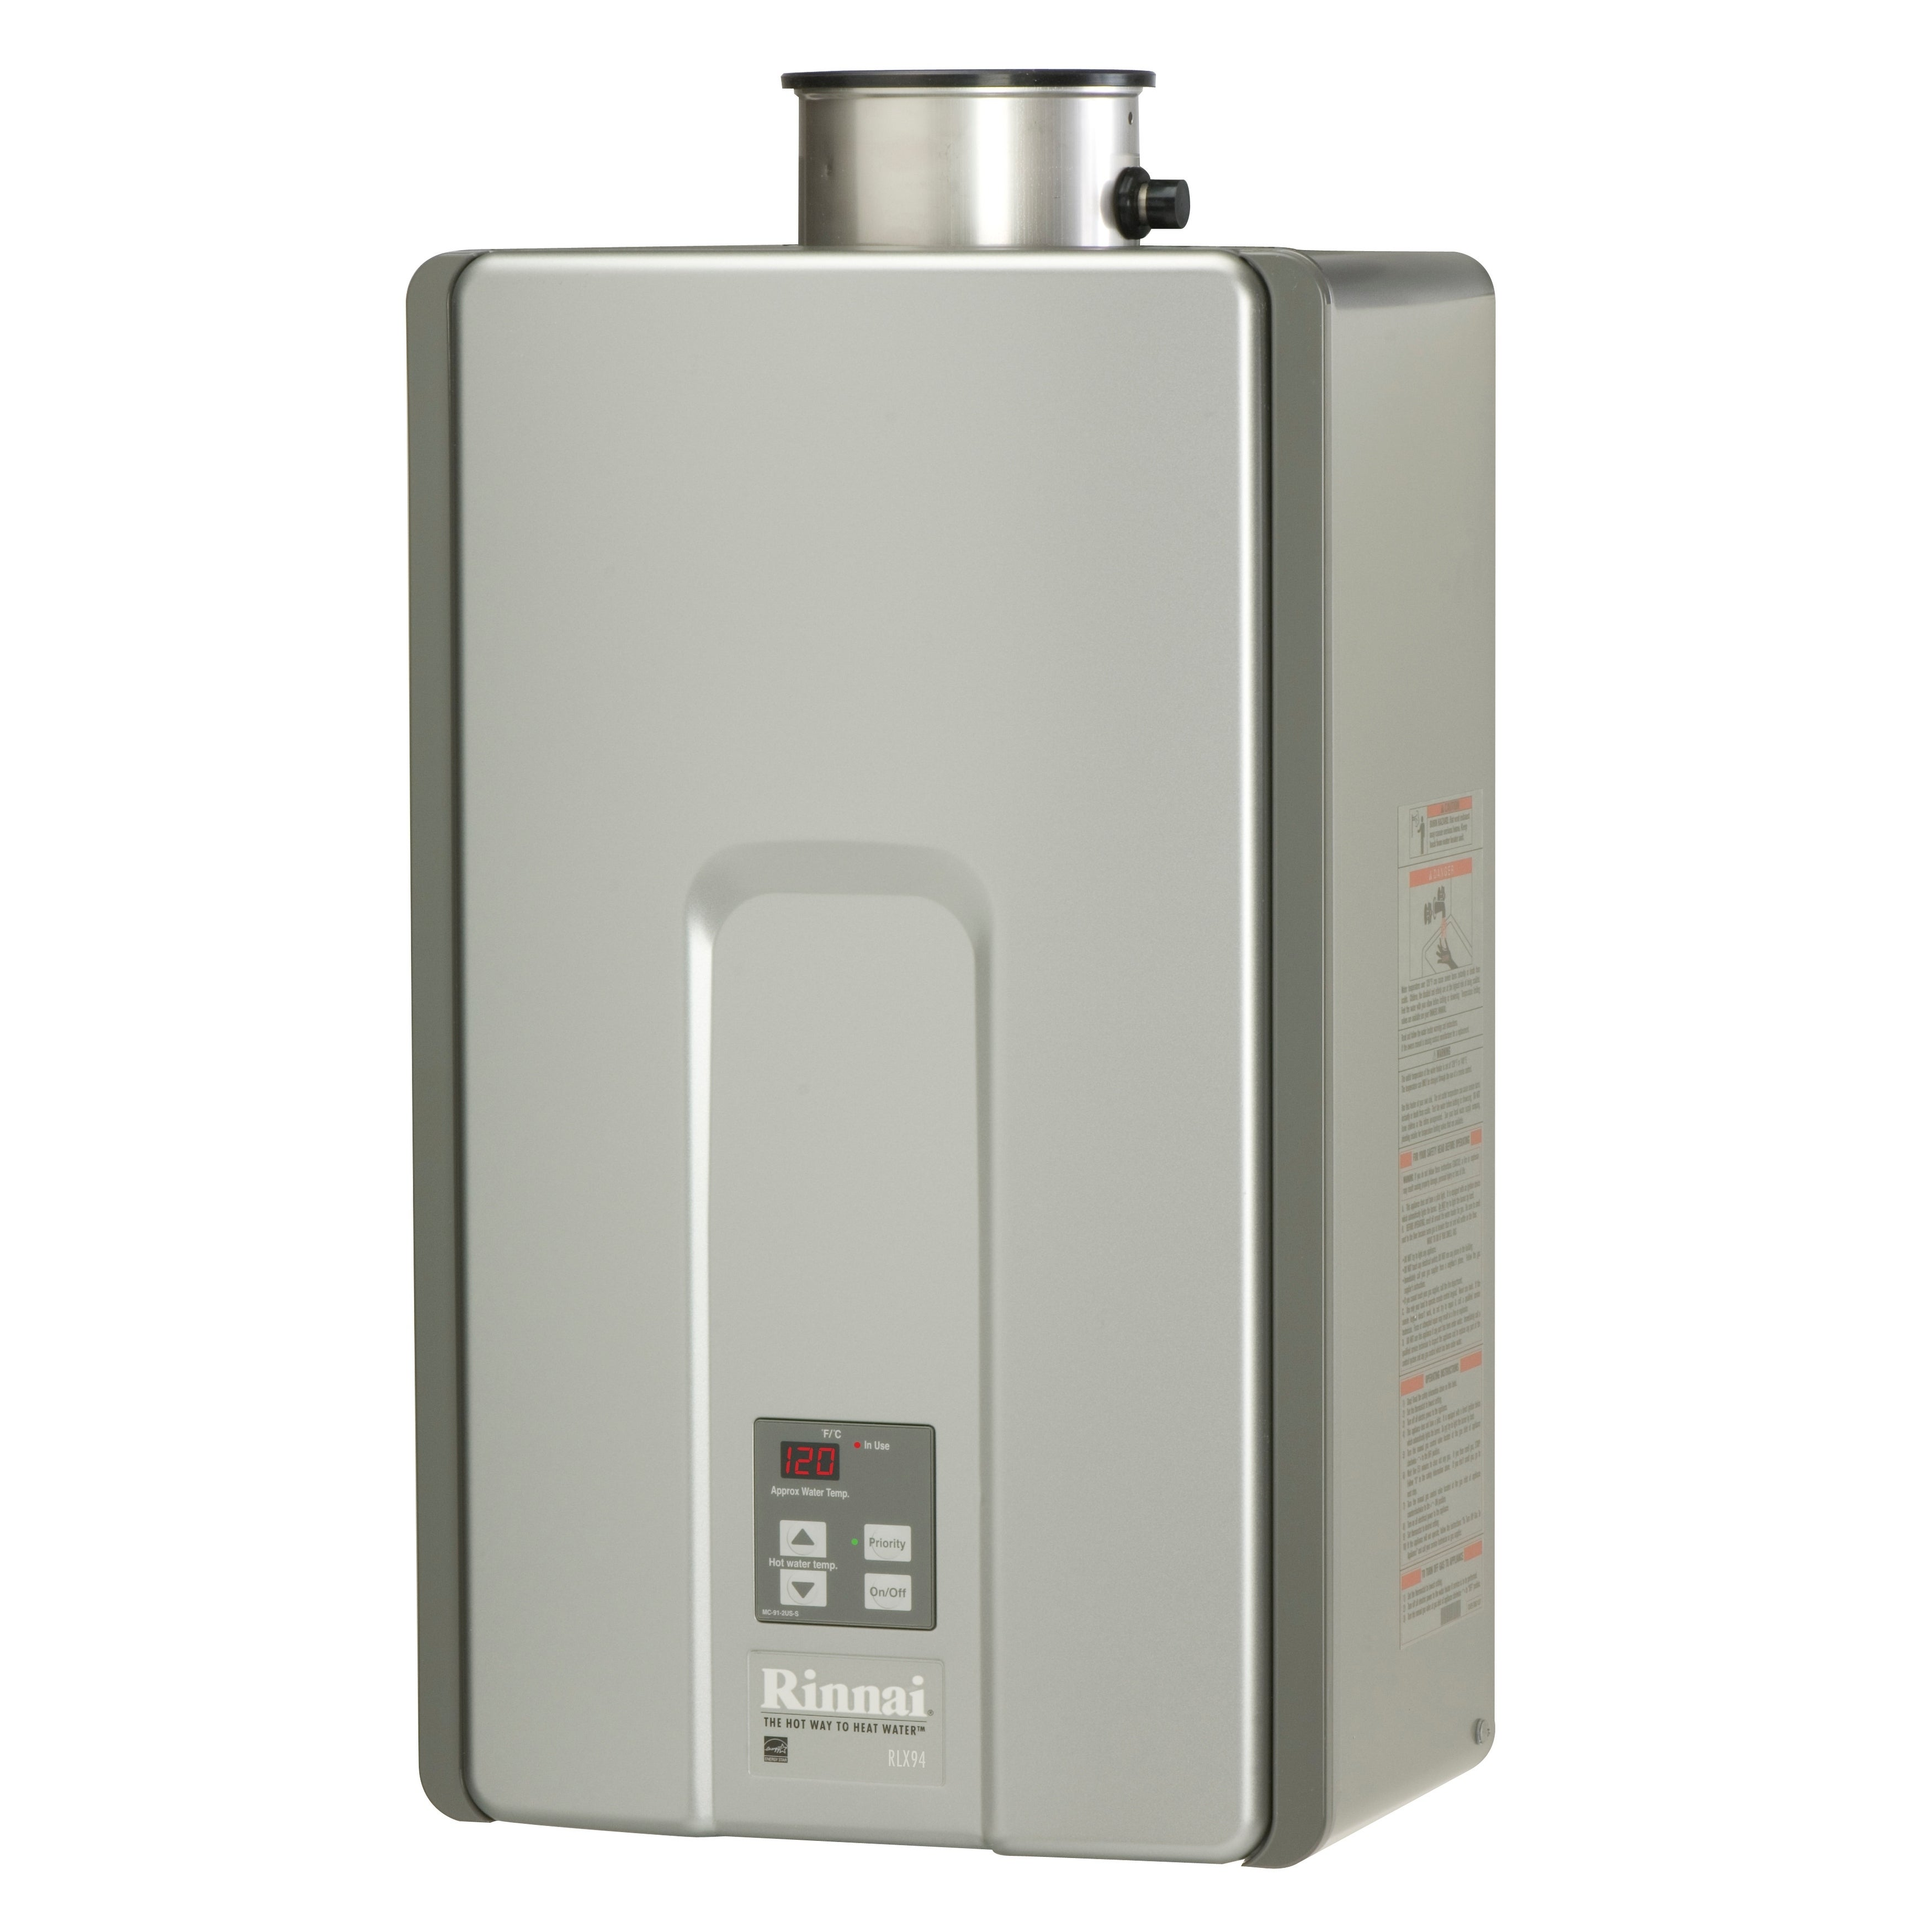 Rinnai Luxury Tankless Water Heater RLX94iN - Silver (Sil...